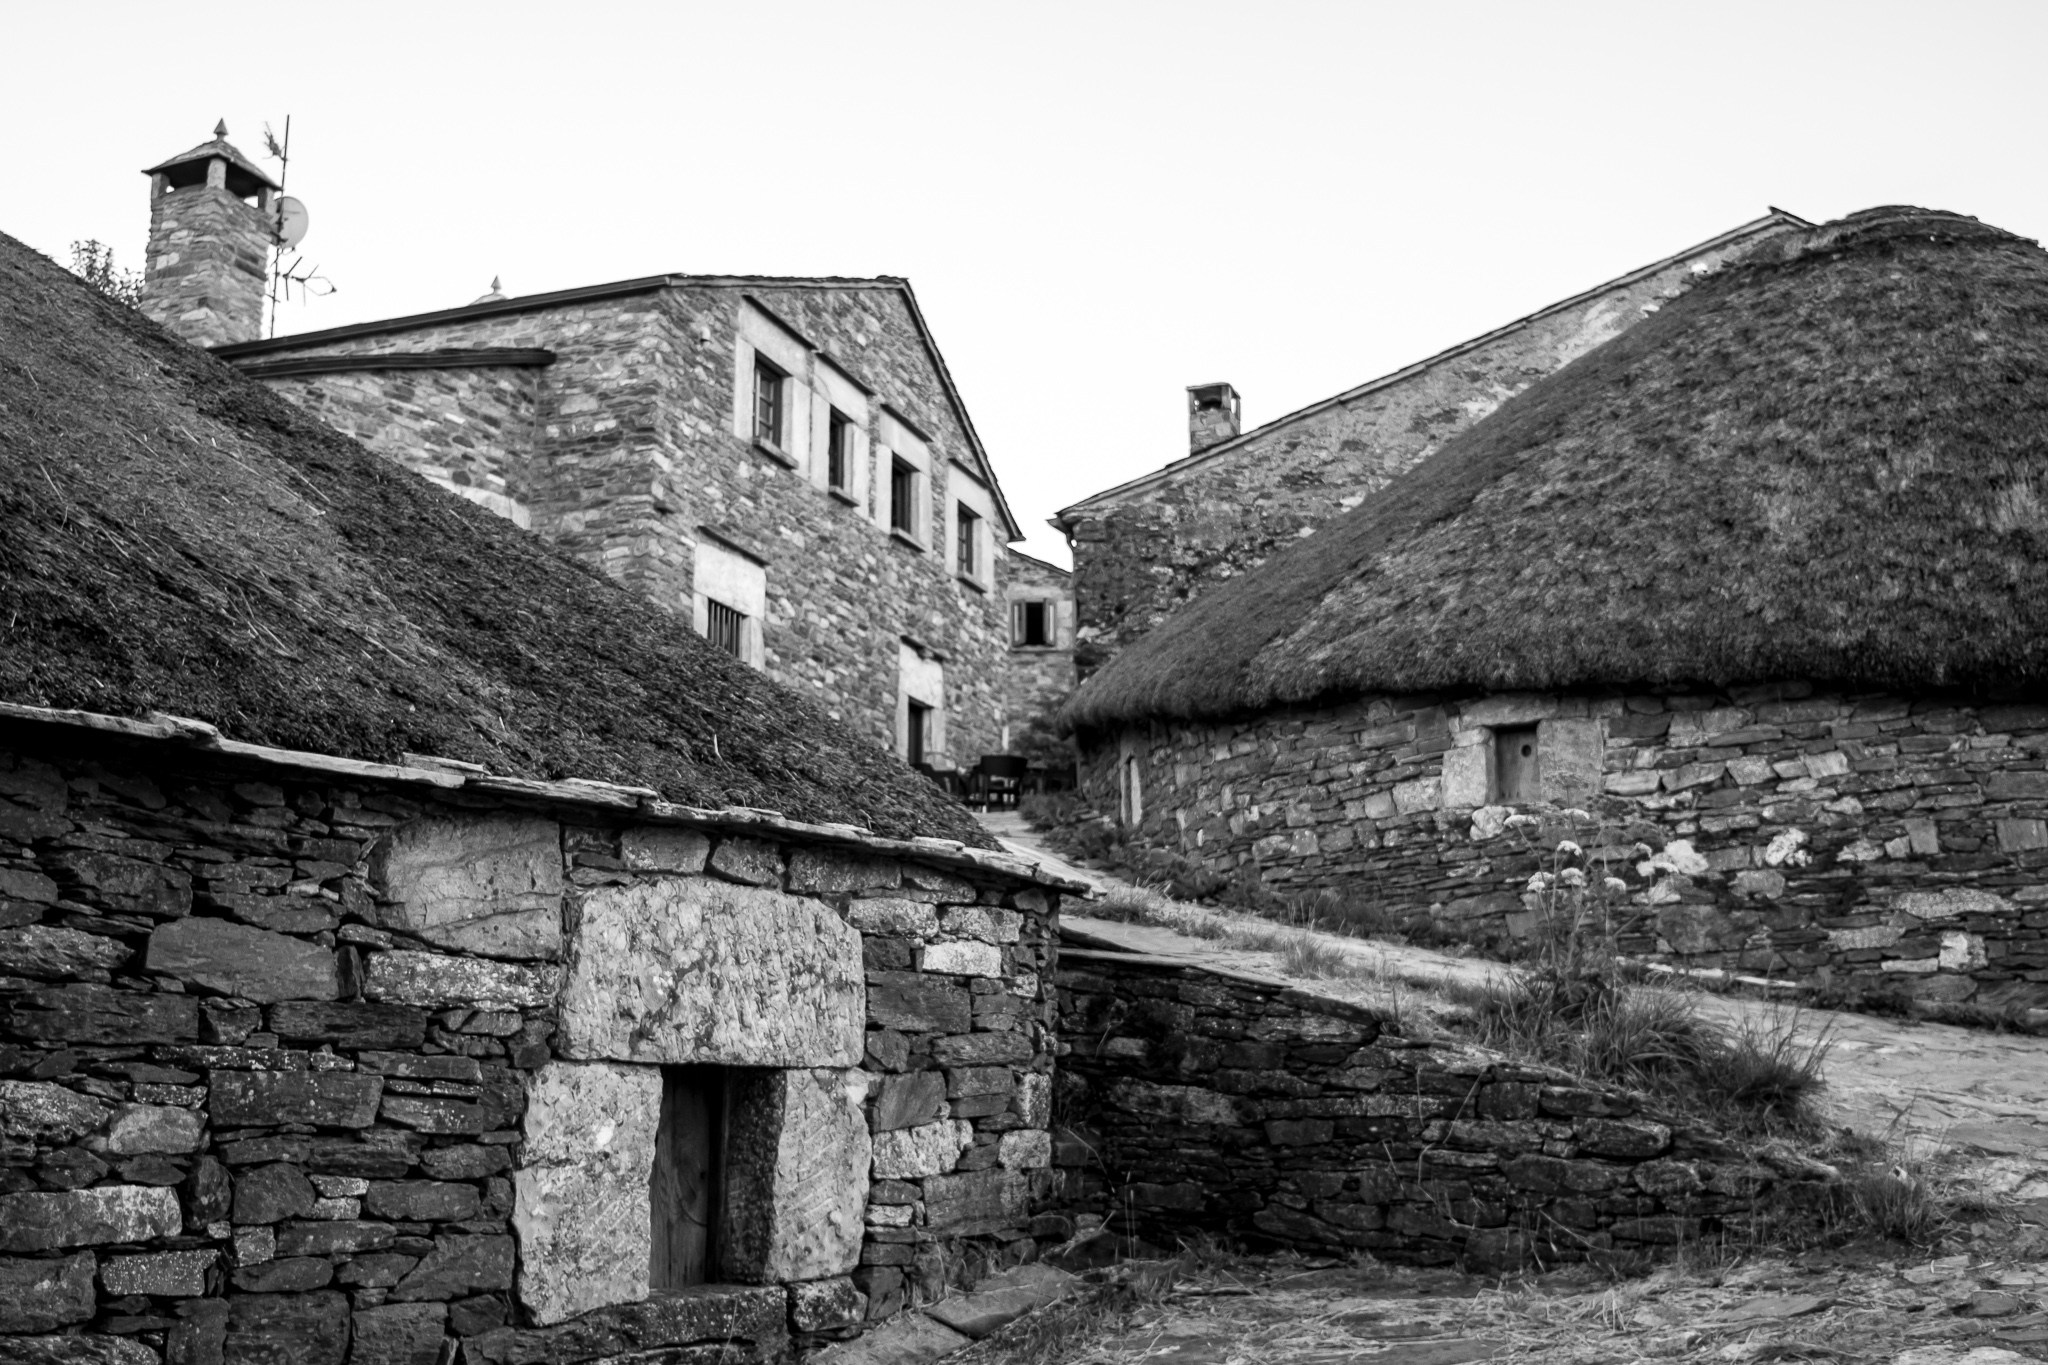 O Cebreiro, in the province of Lugo, constitutes the entrance to Galicia of the Way of St. James in its French slope. <br>Located at 1,300 meters altitude and in an exceptional environment, it is characterized mainly by the dwellings called pallozas, traditional constructions of stone and that can withstand the storms of snow and wind of the high mountains.